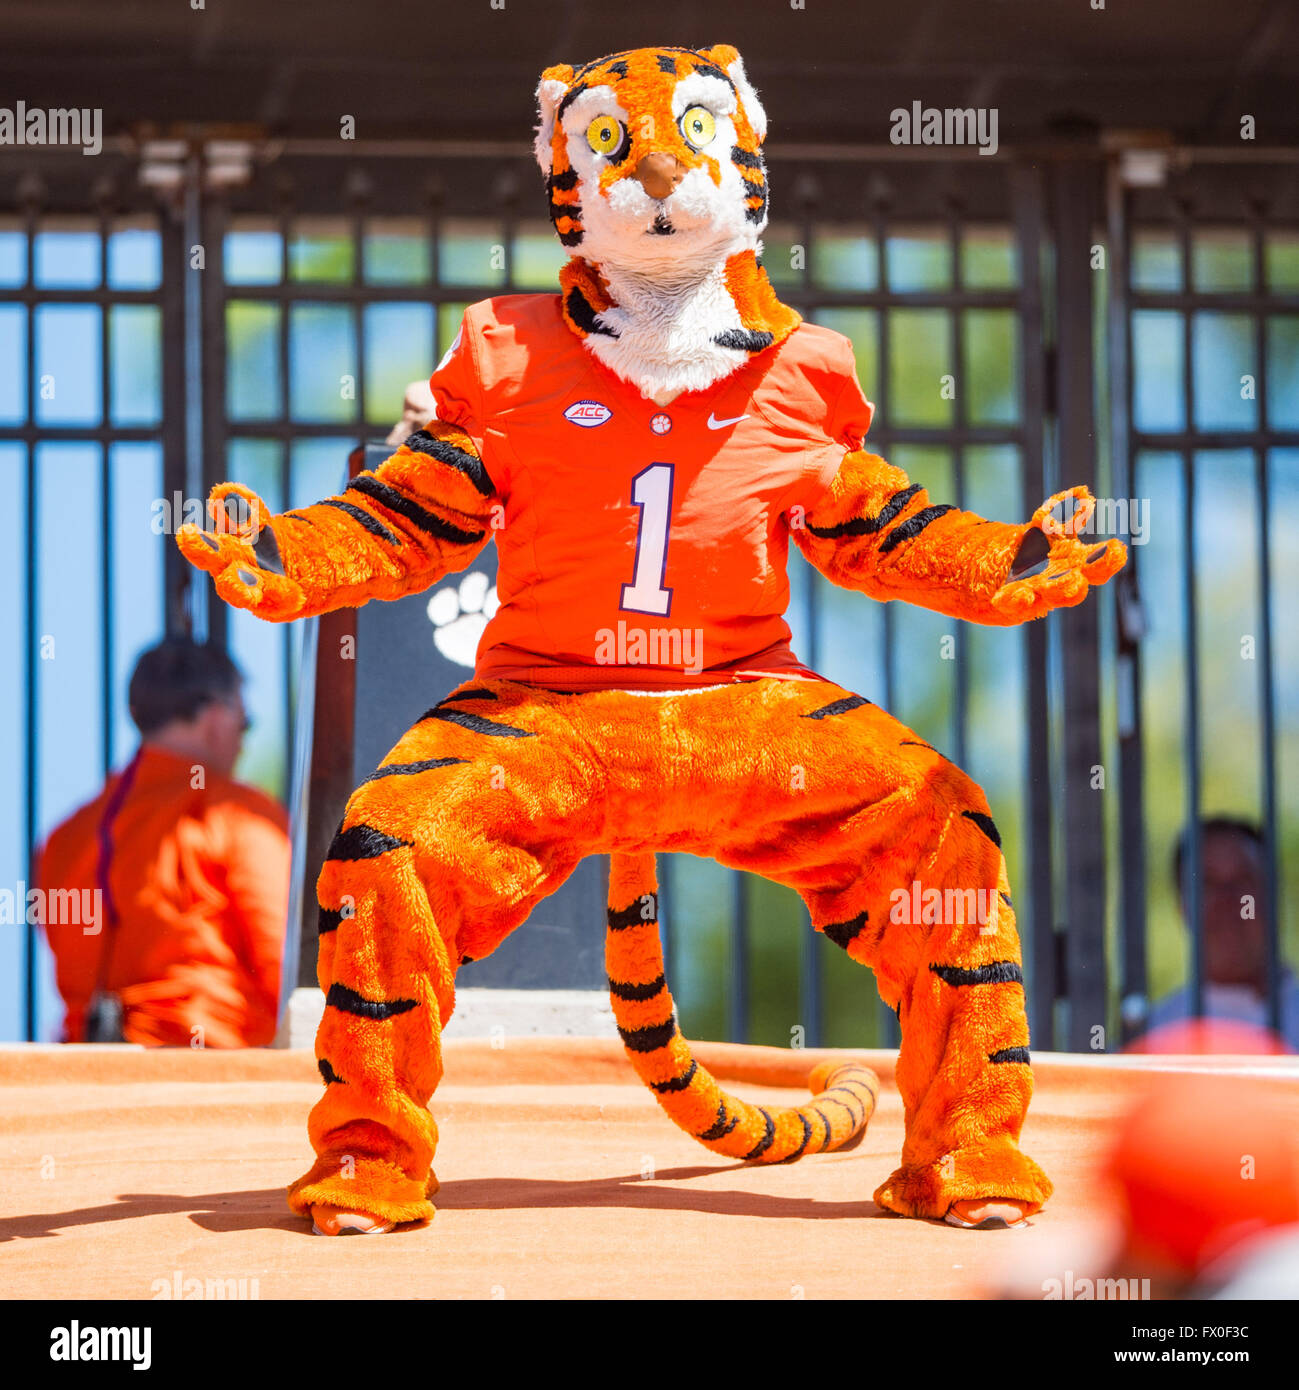 The Clemson Tiger Mascot during the Clemson Football ...